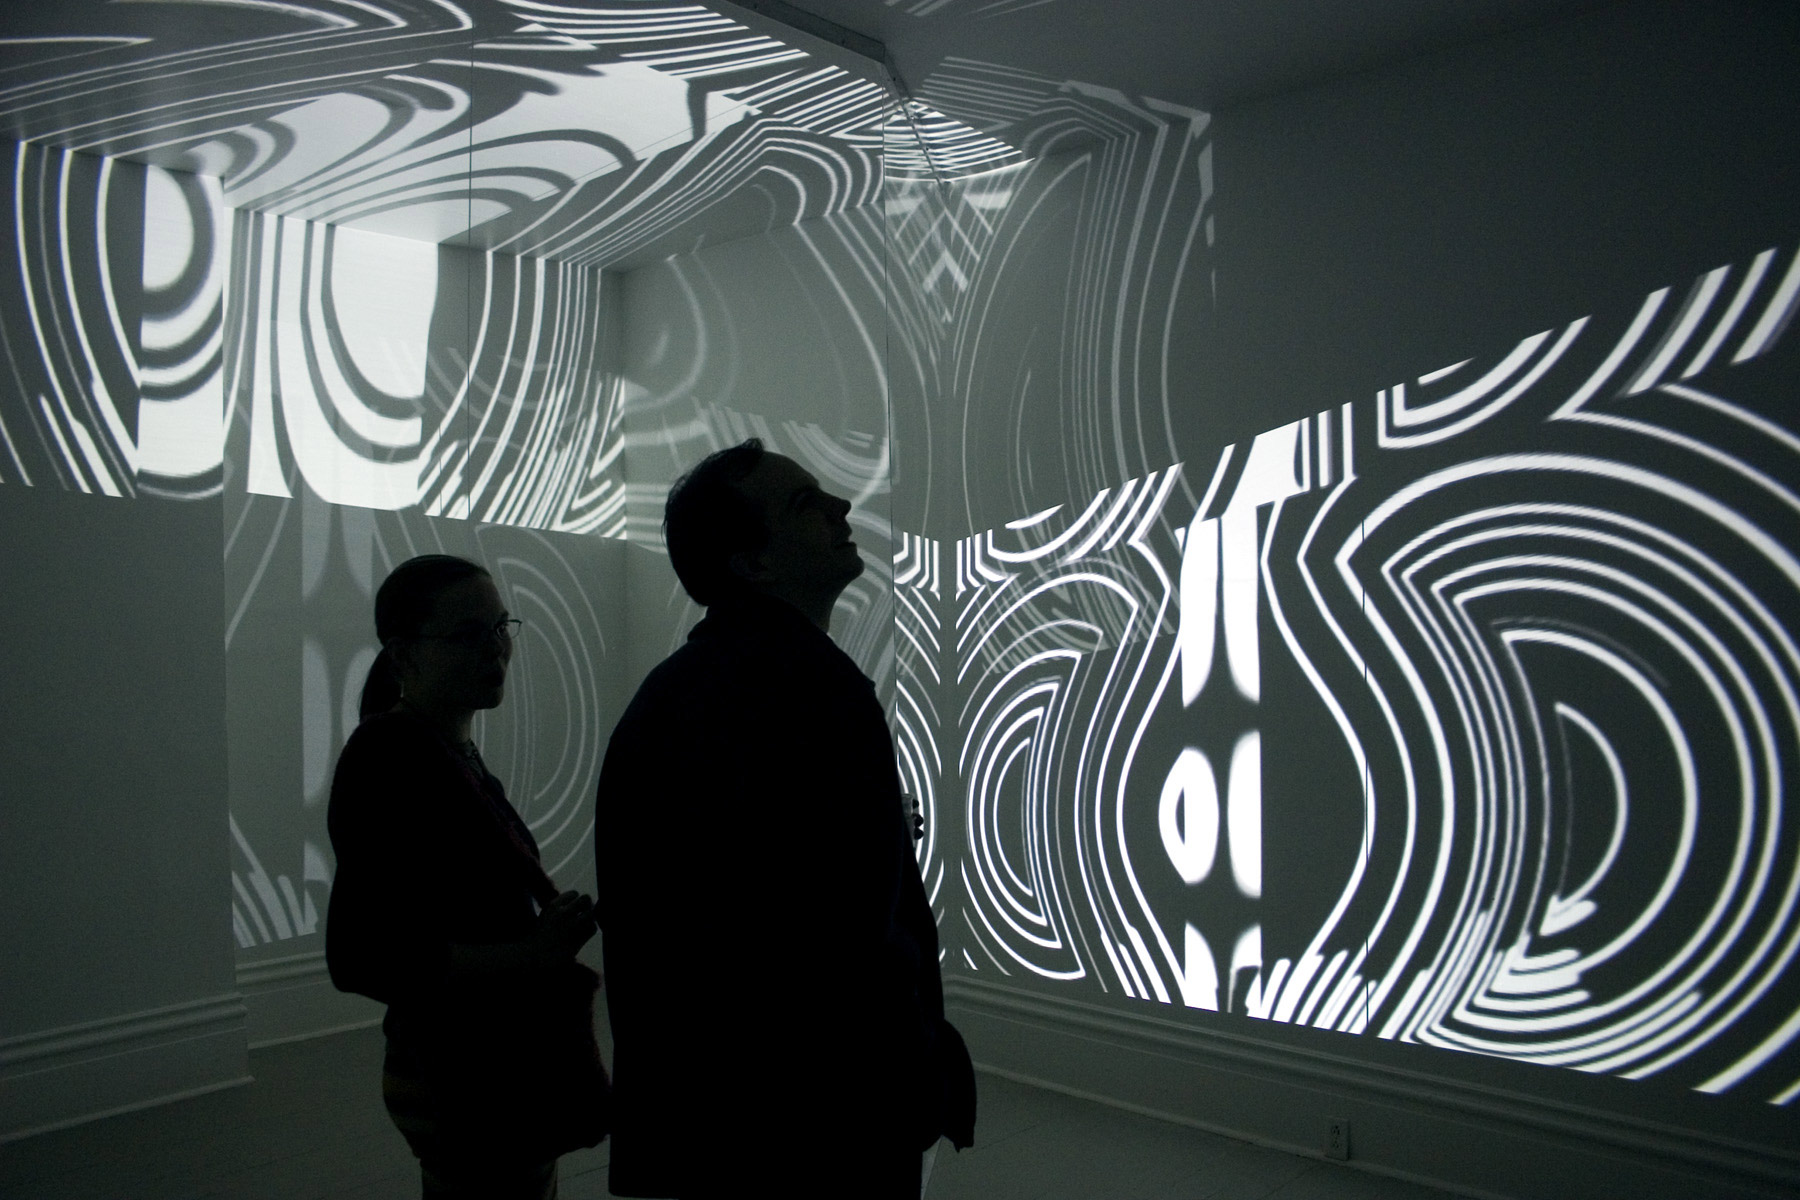 Expanding Magnetic Molten Symmetry, 2006, 00:18:00 minutes loop, b/w, no audio, h 10 x l 20 x w 14 feet , two video projections, plexiglass